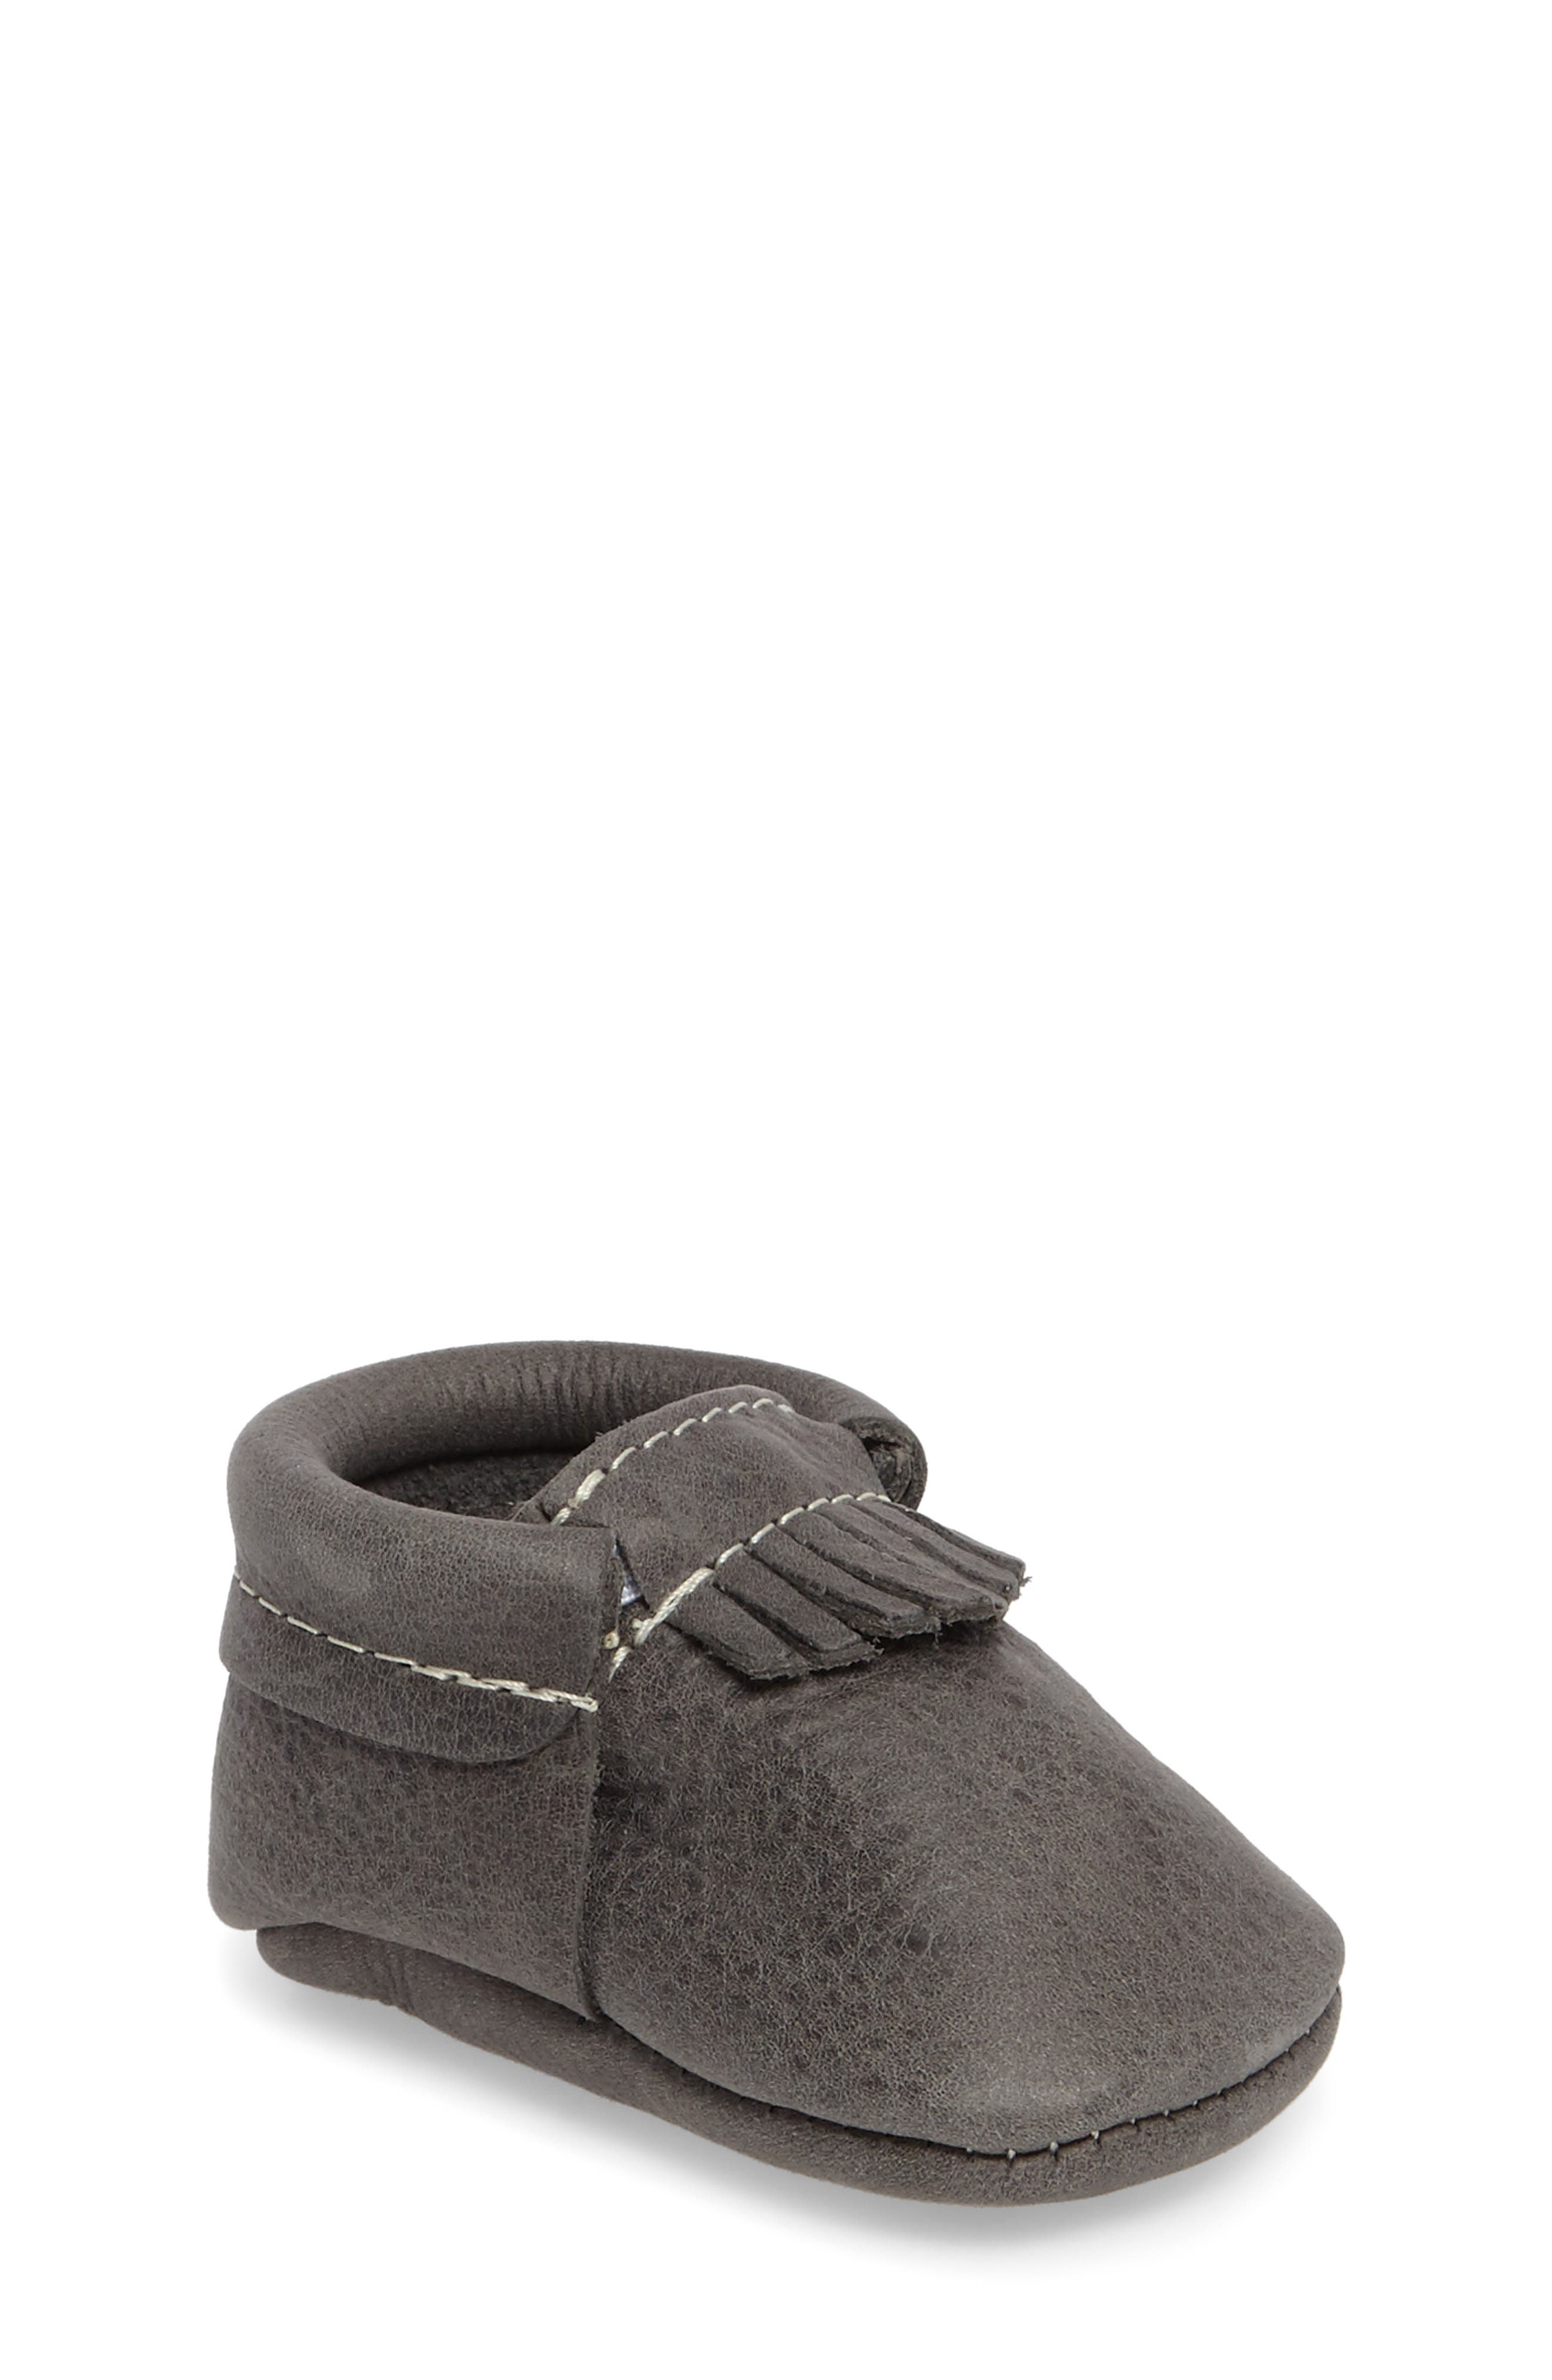 City Moccasin,                         Main,                         color,